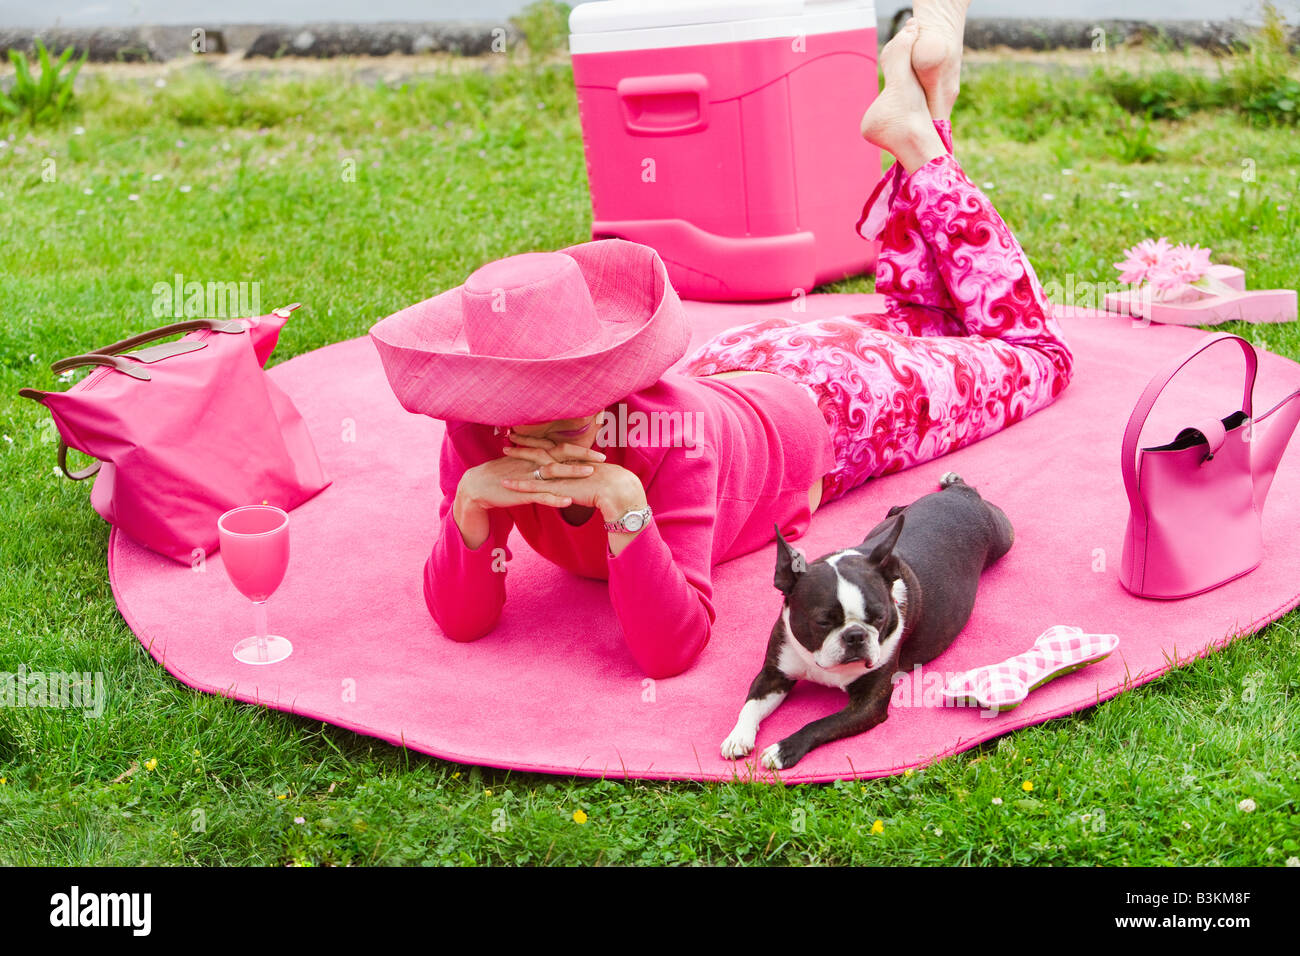 Woman in pink and dog picnicking - Stock Image